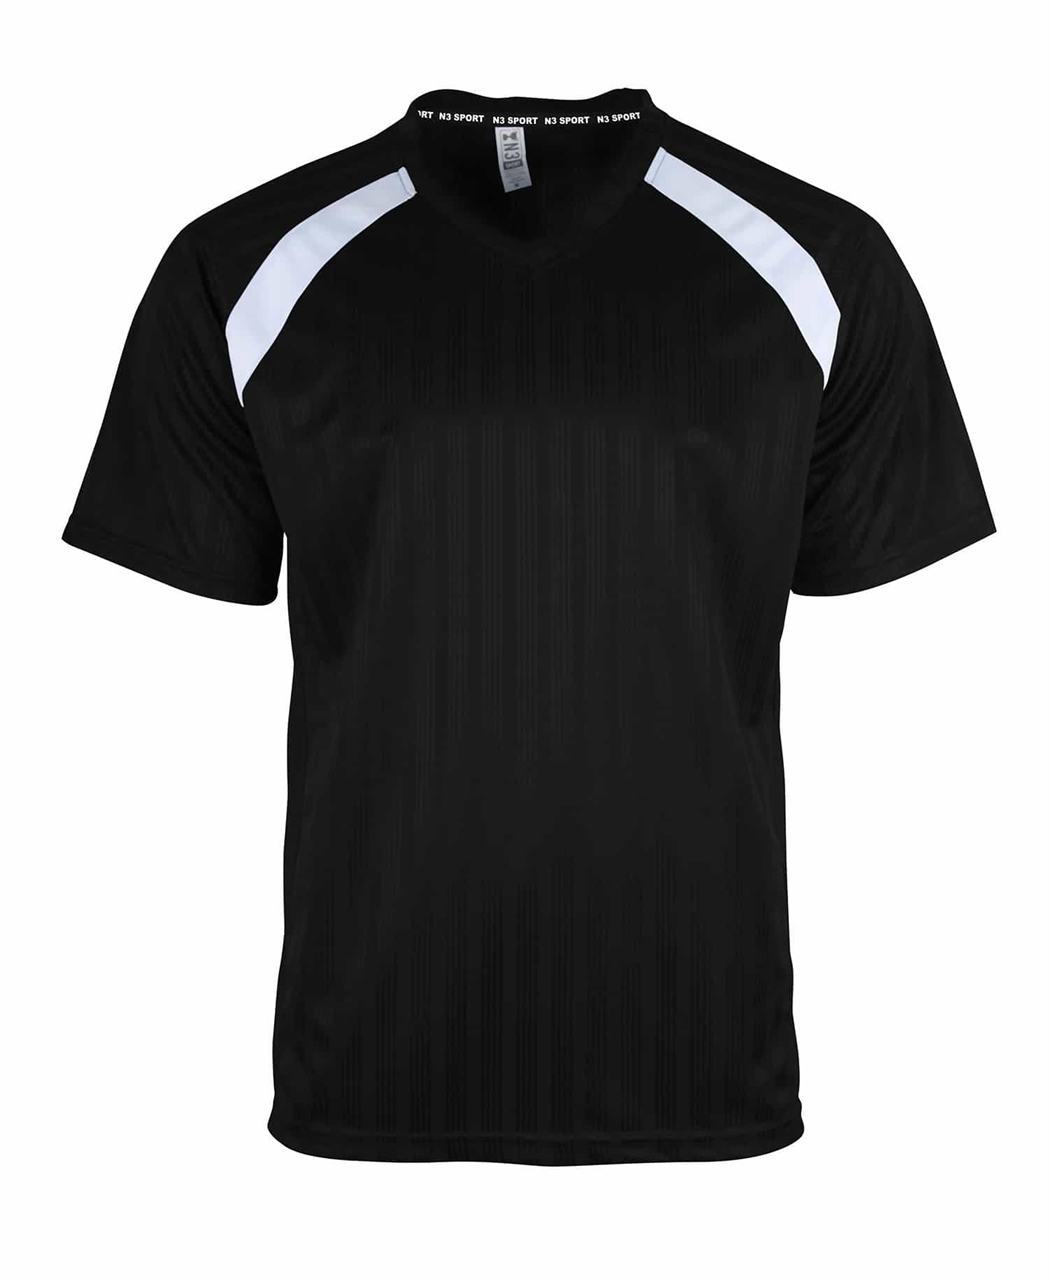 Picture of N3 Sport Youth Soccer Jersey